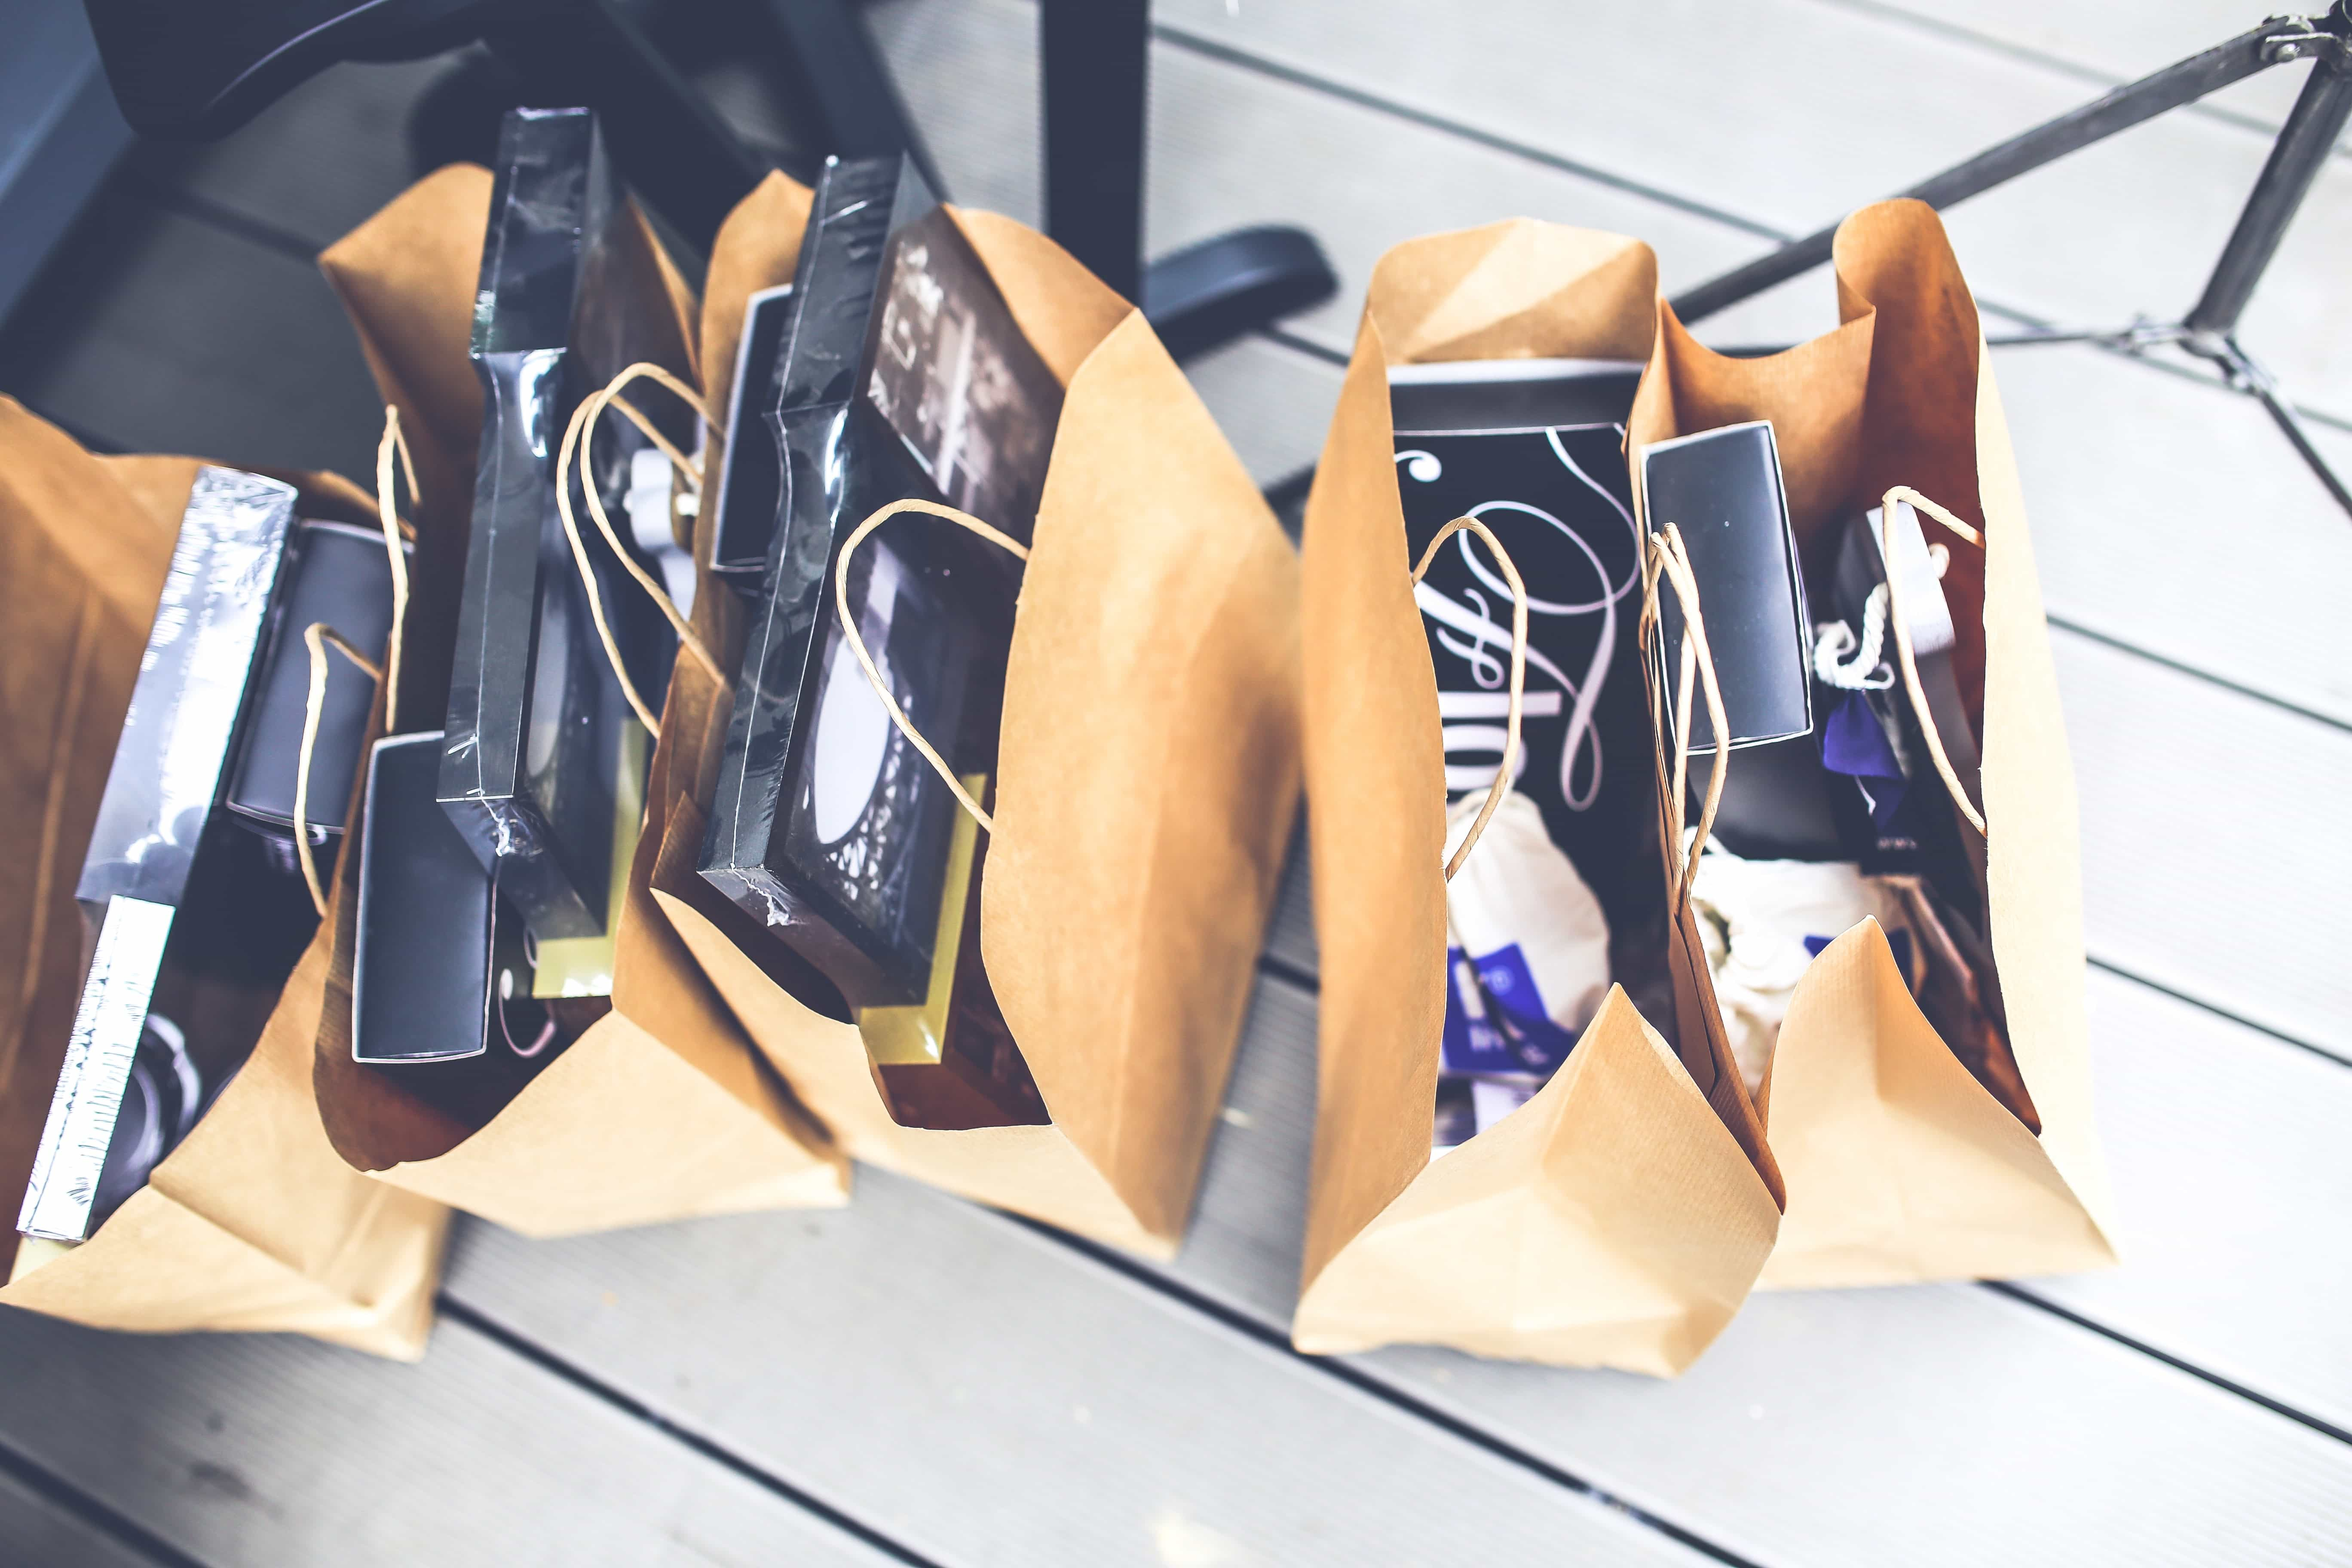 Shopping bags filled with items